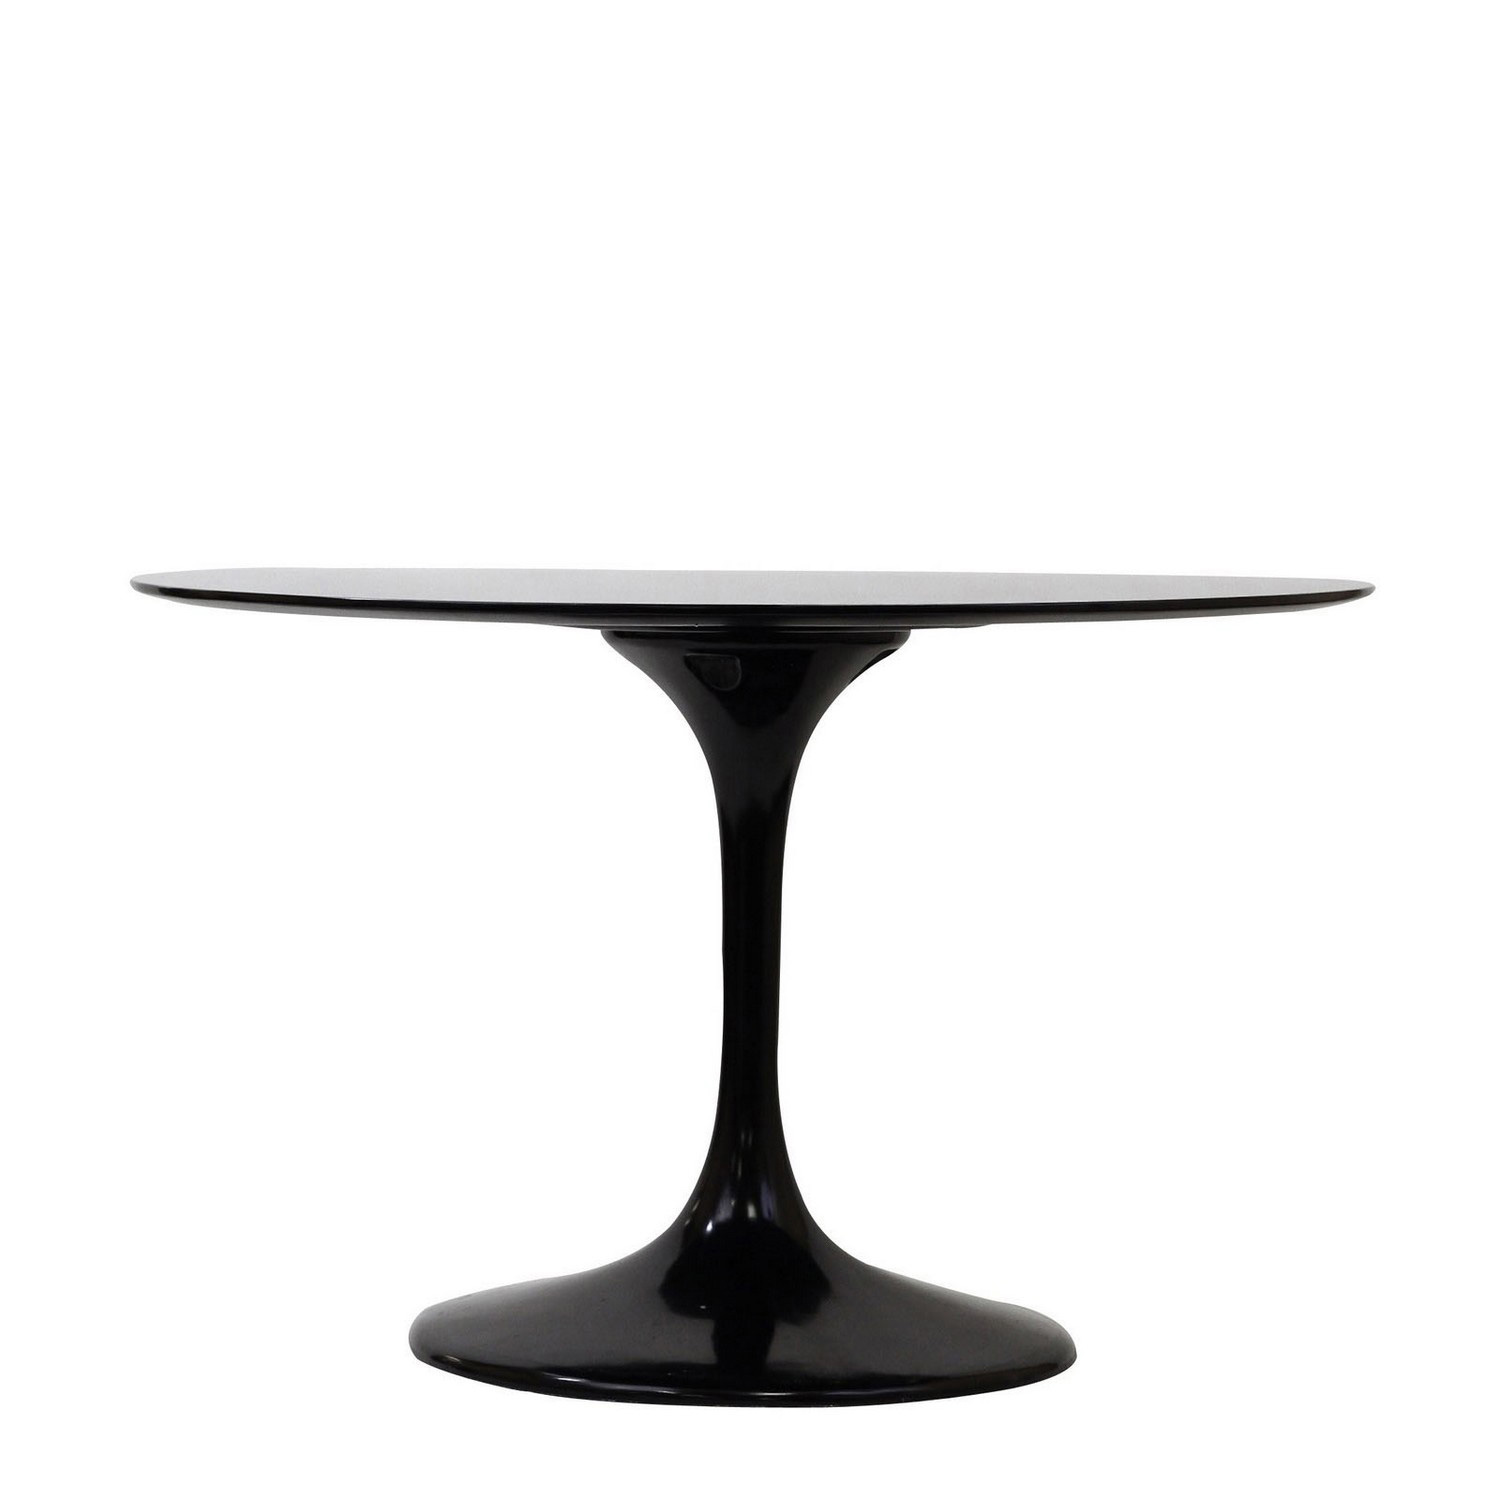 Modway Lippa 40 Fiberglass Dining Table - Black